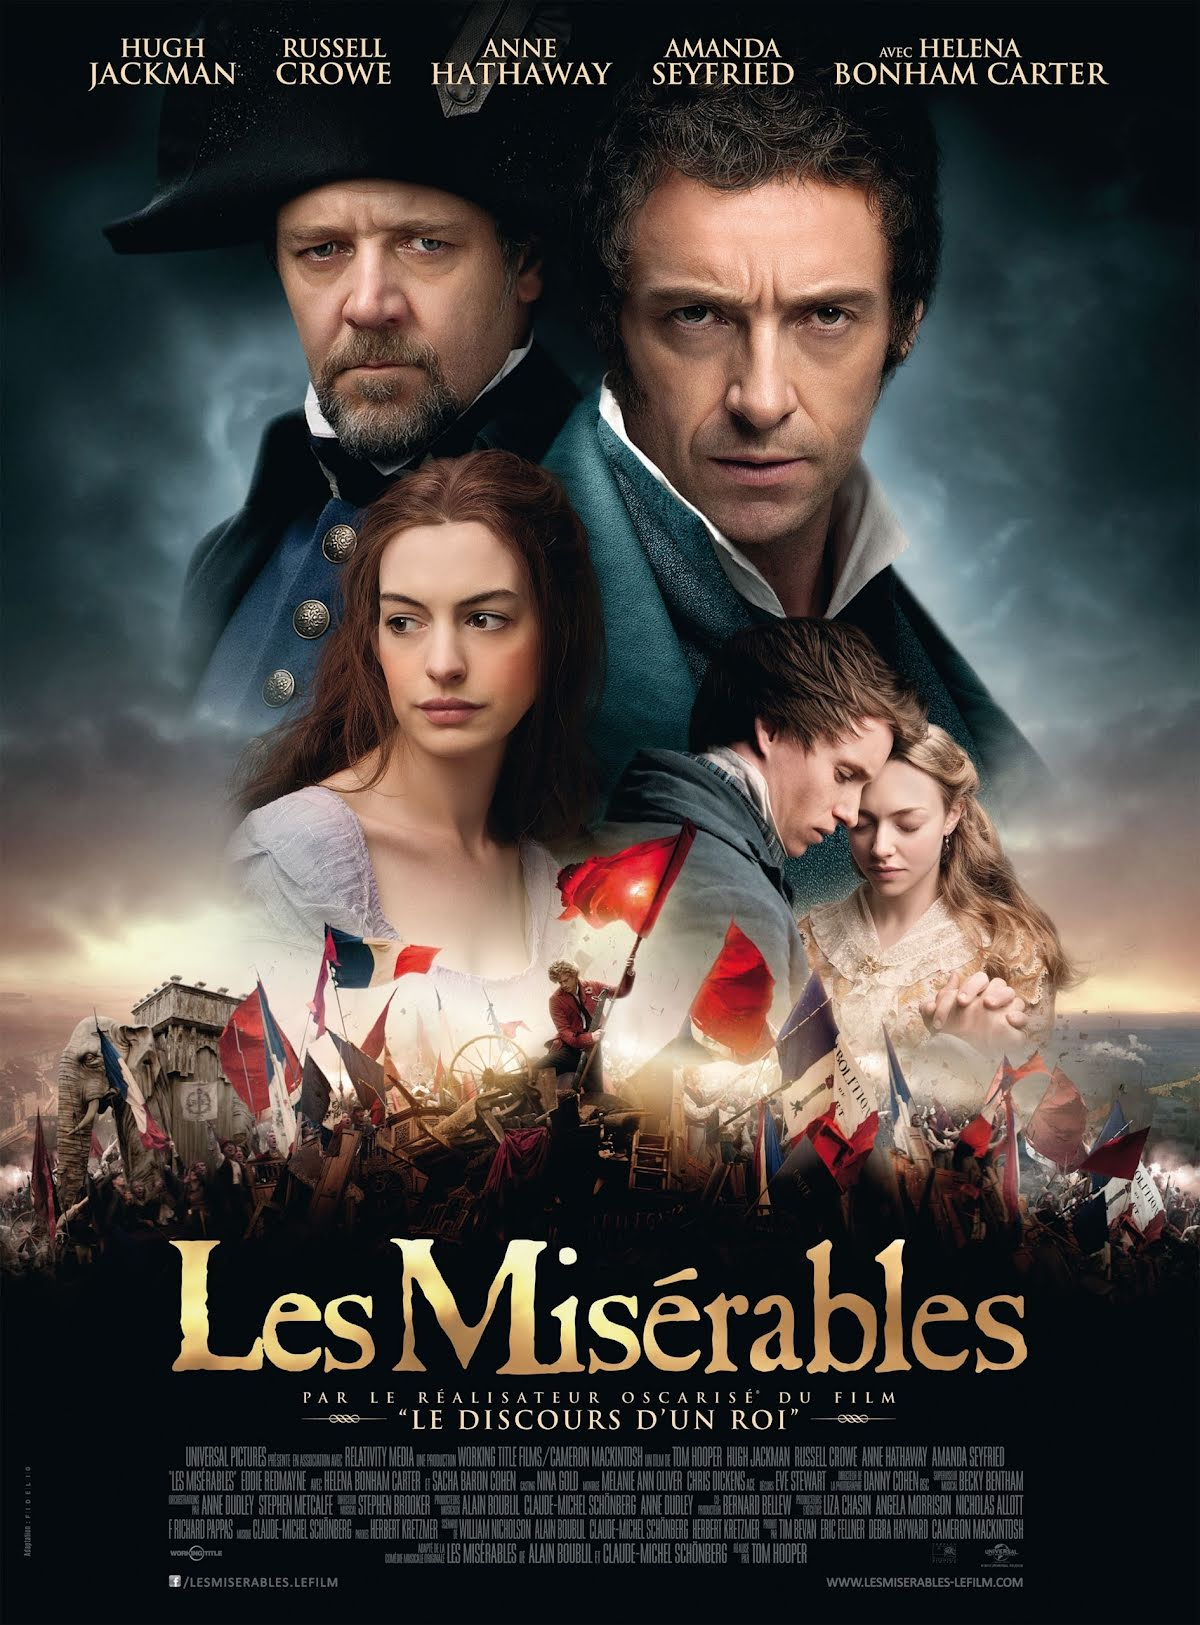 Los miserables - Les Misérables (2012)